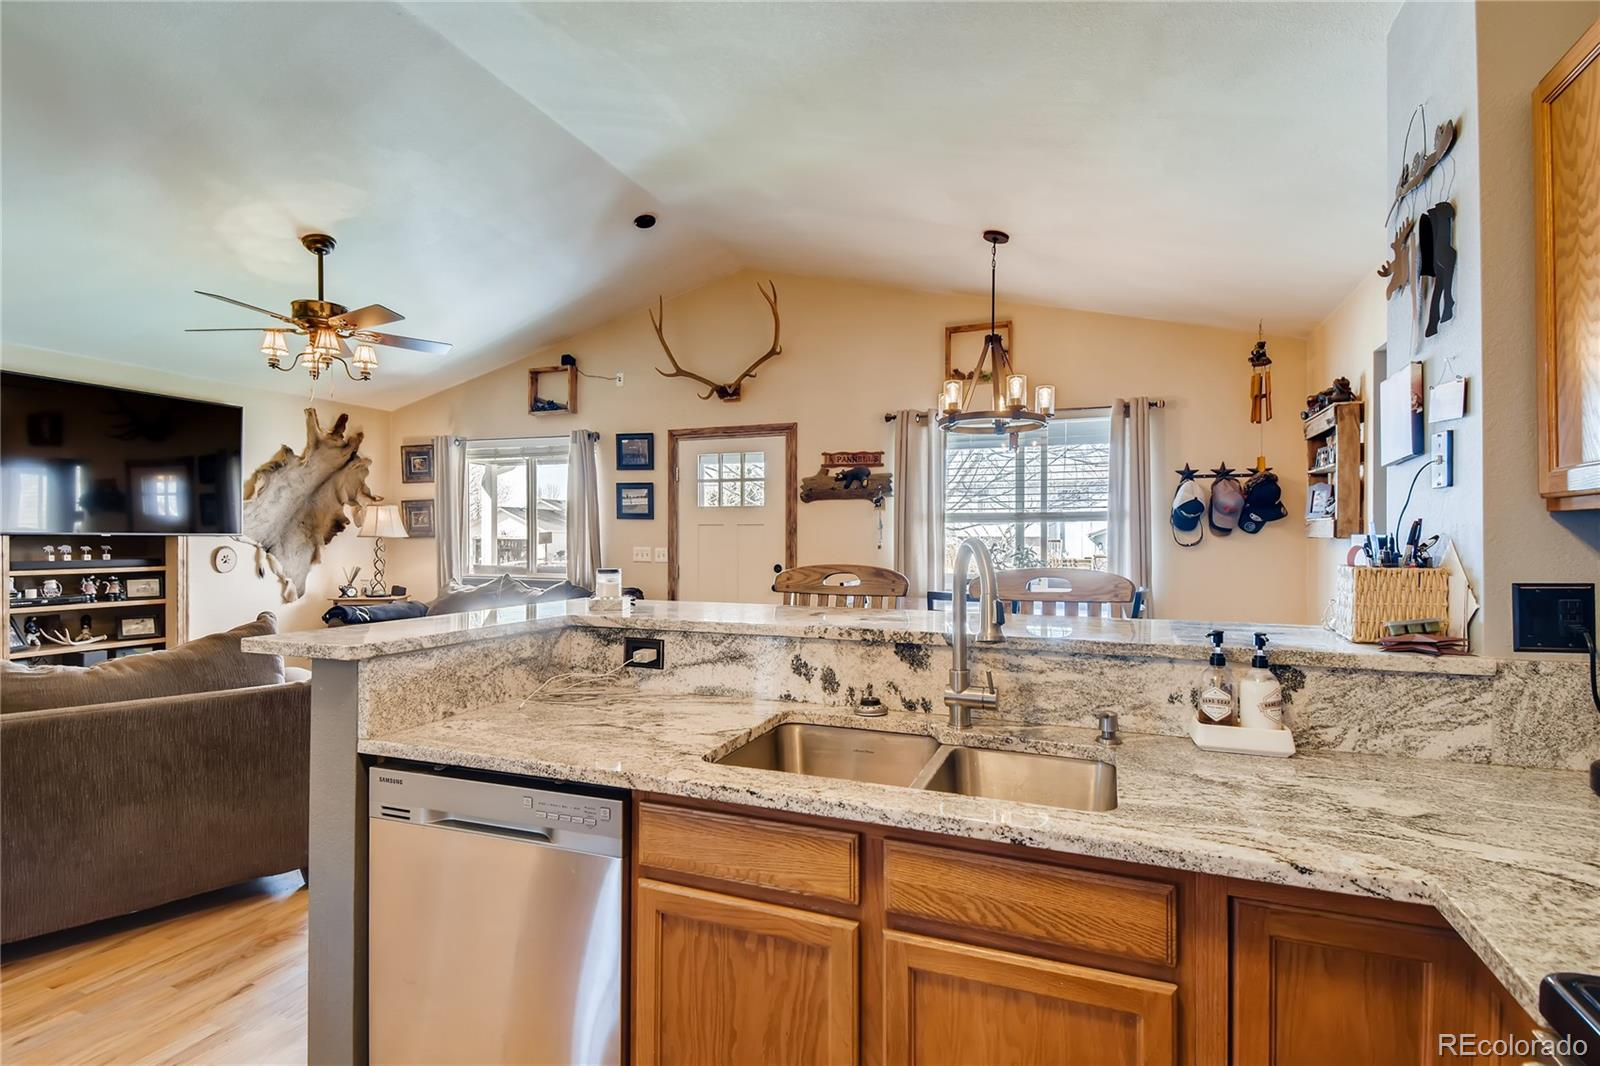 MLS# 3845561 - 11 - 524 Hawthorn Circle, Frederick, CO 80530